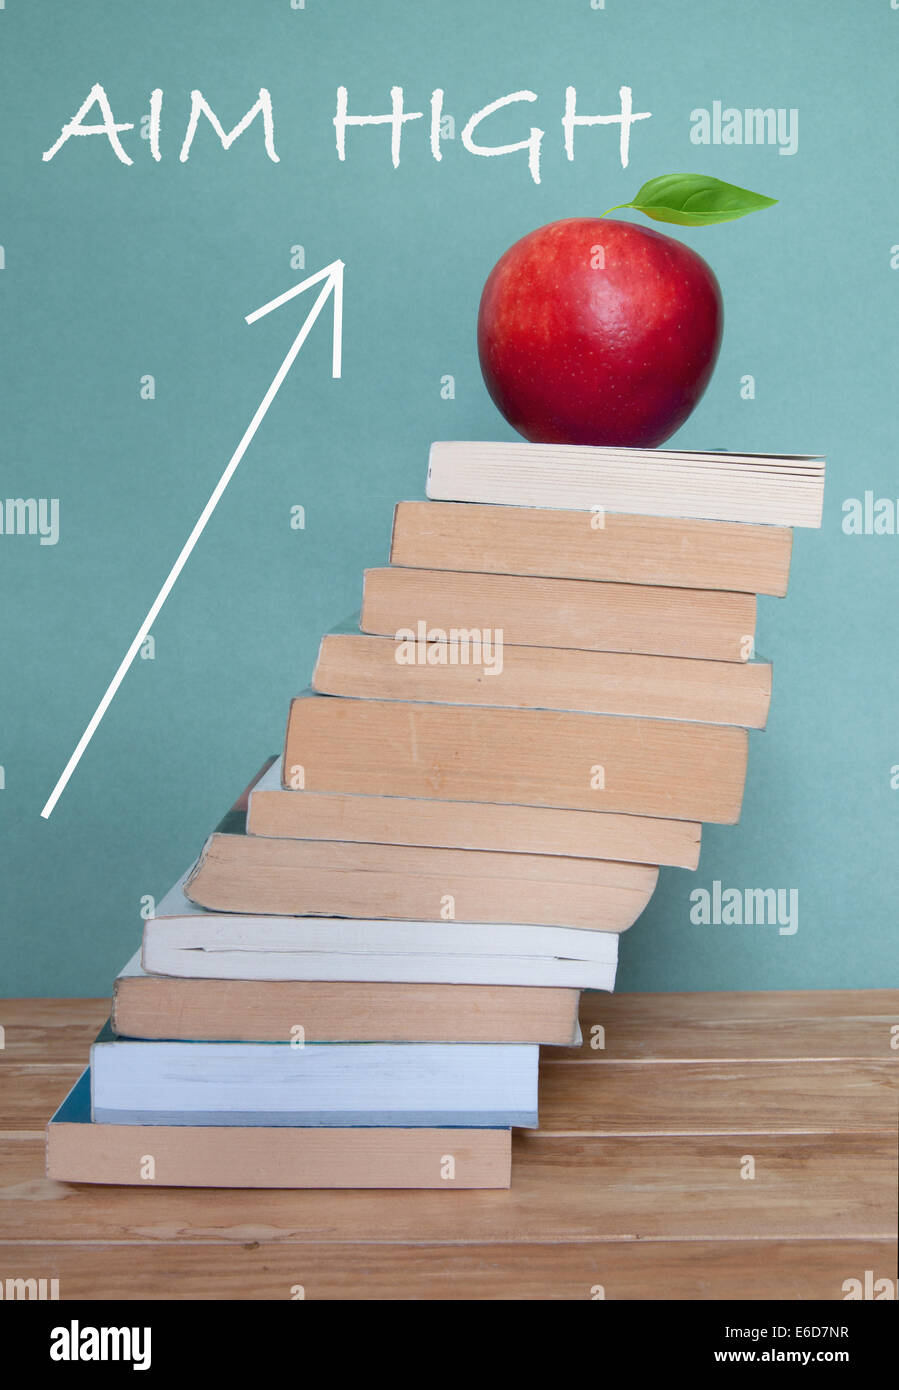 Aim high in education - Stock Image